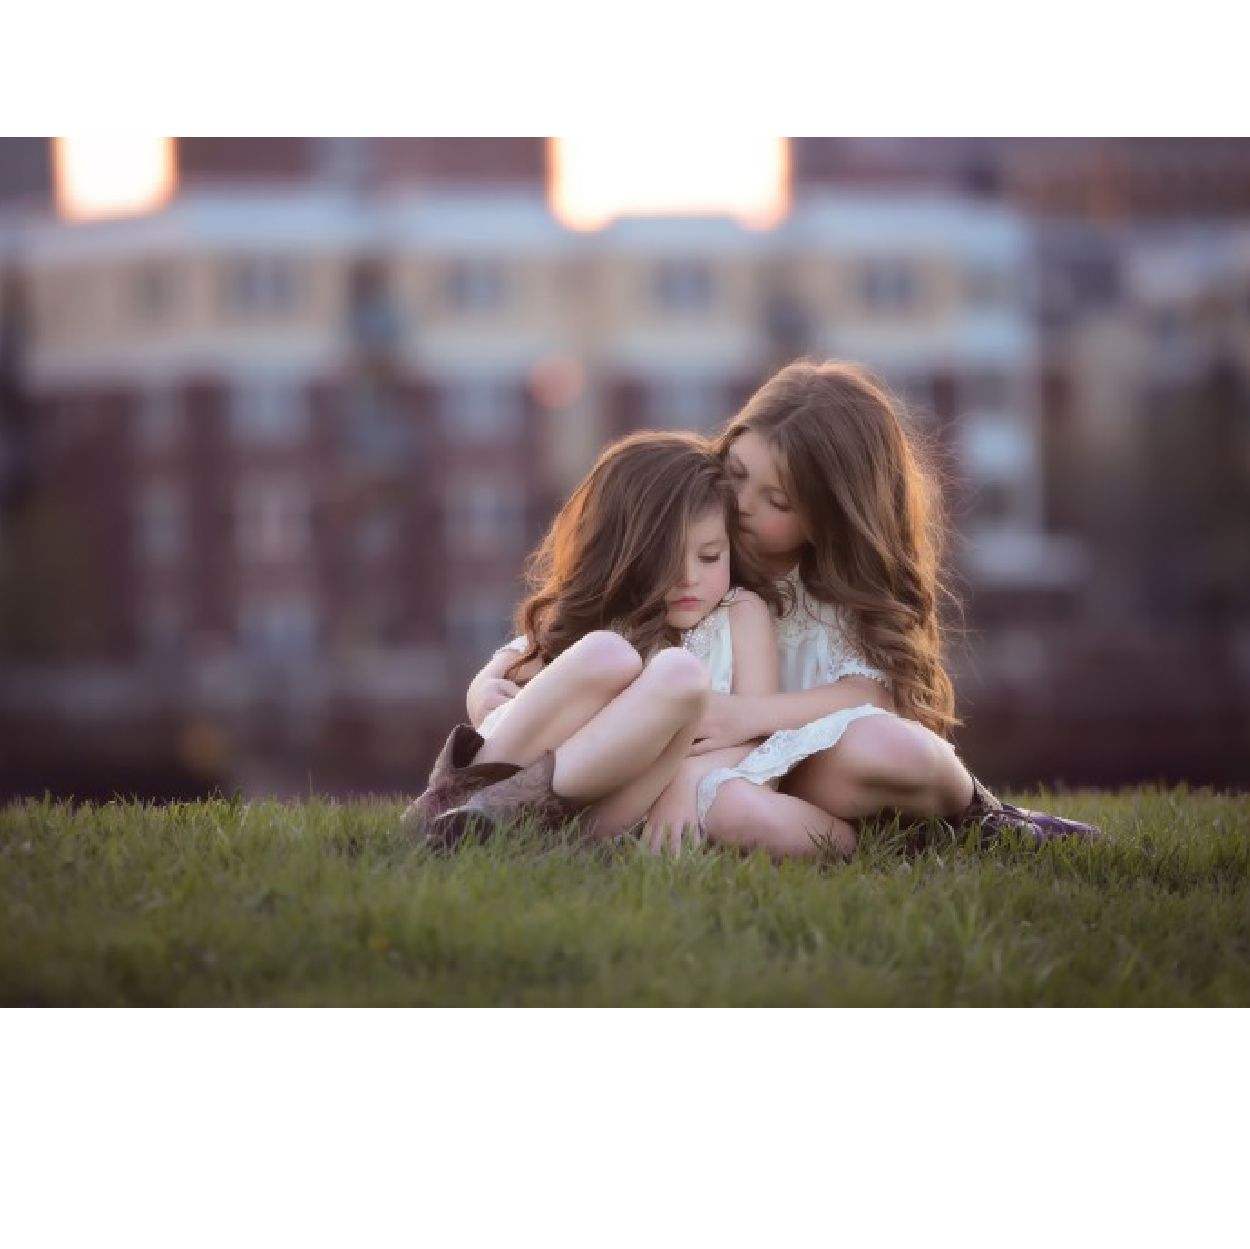 An Open Letter To My Big Sister Sister Wallpaper Cute Girl Wallpaper Sister Pictures